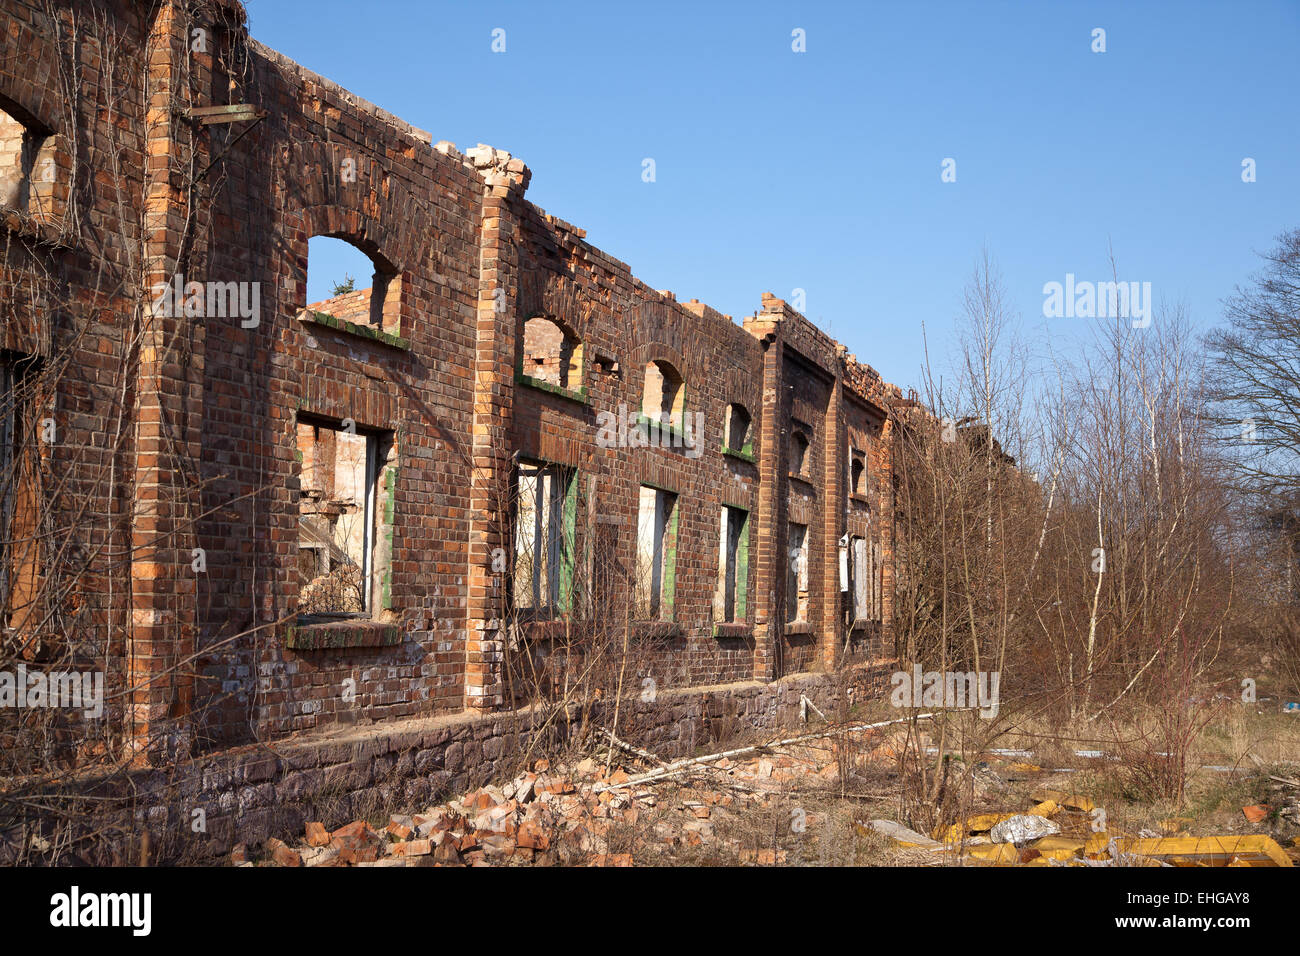 industrial monument - Stock Image